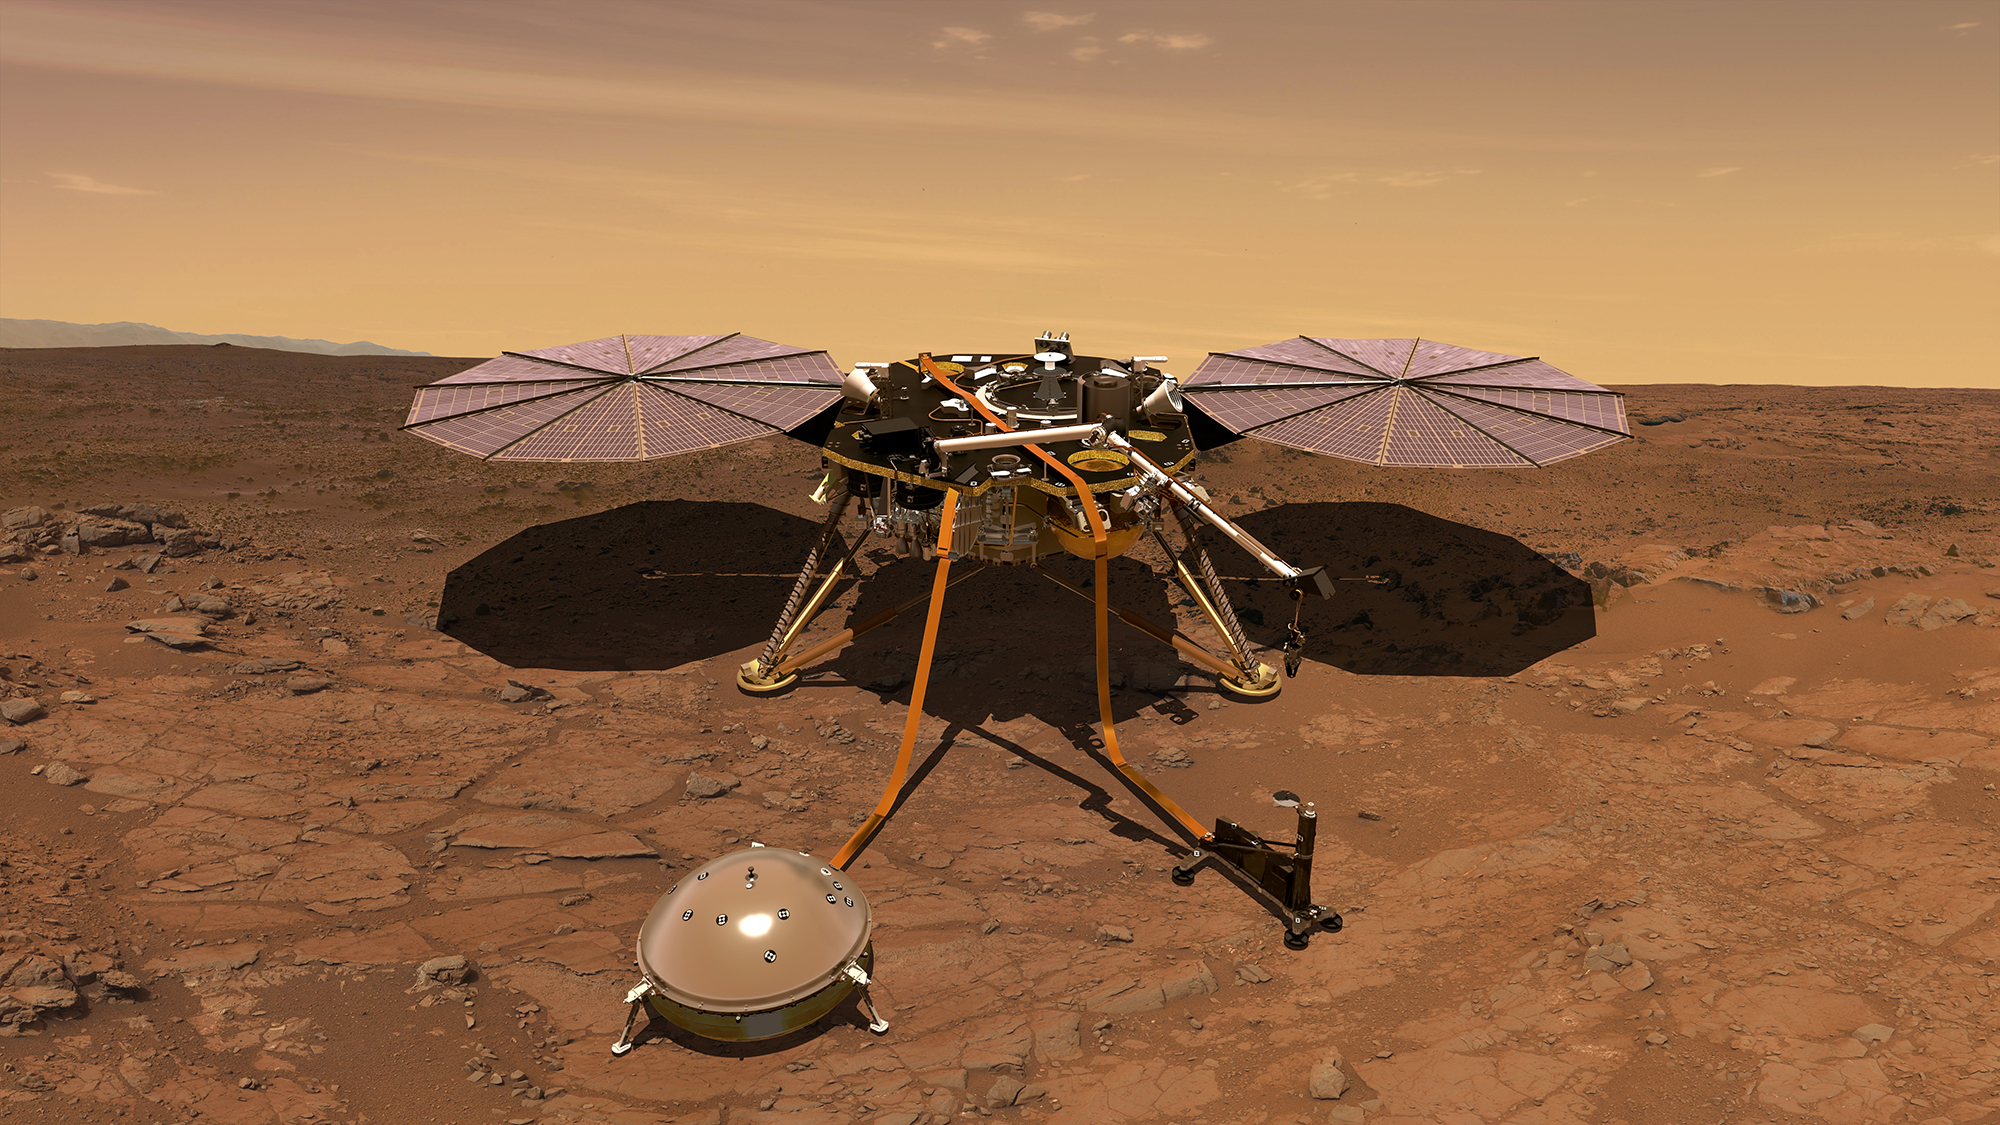 mars rover insight photos - photo #6